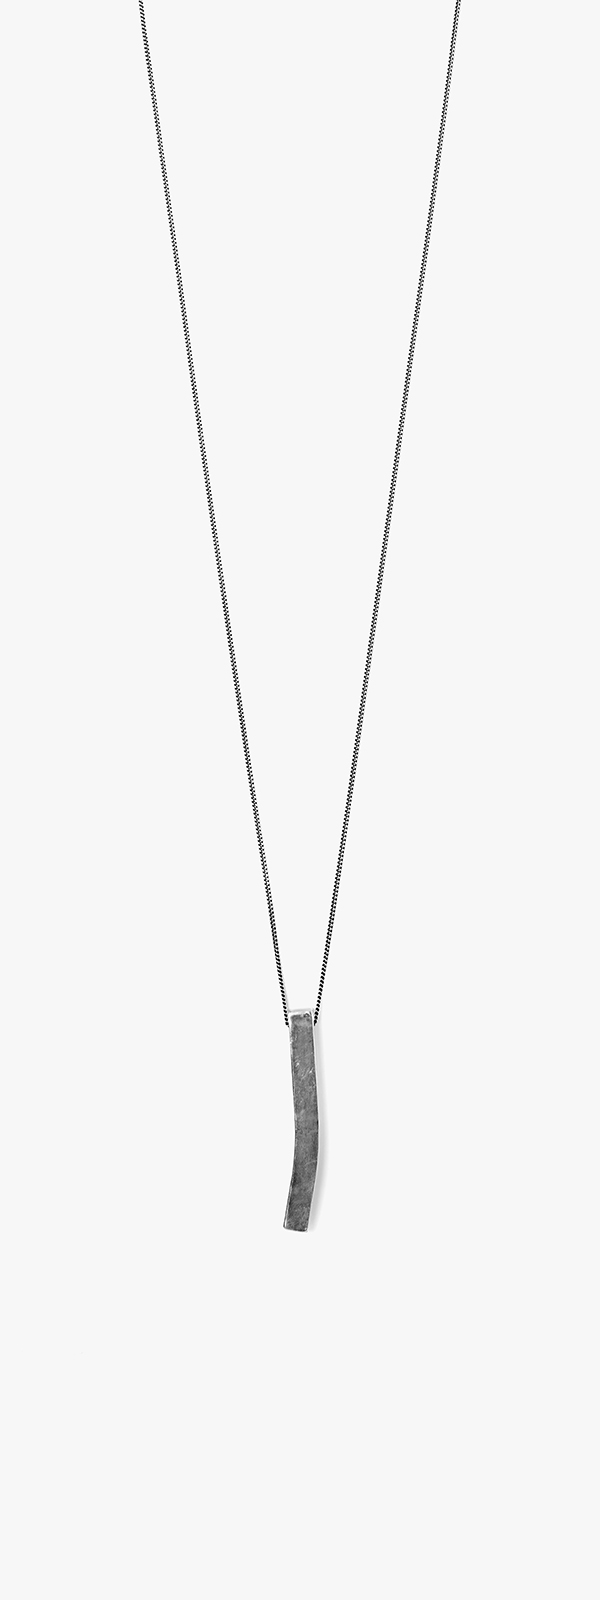 Image of Curved Bar Necklace 080